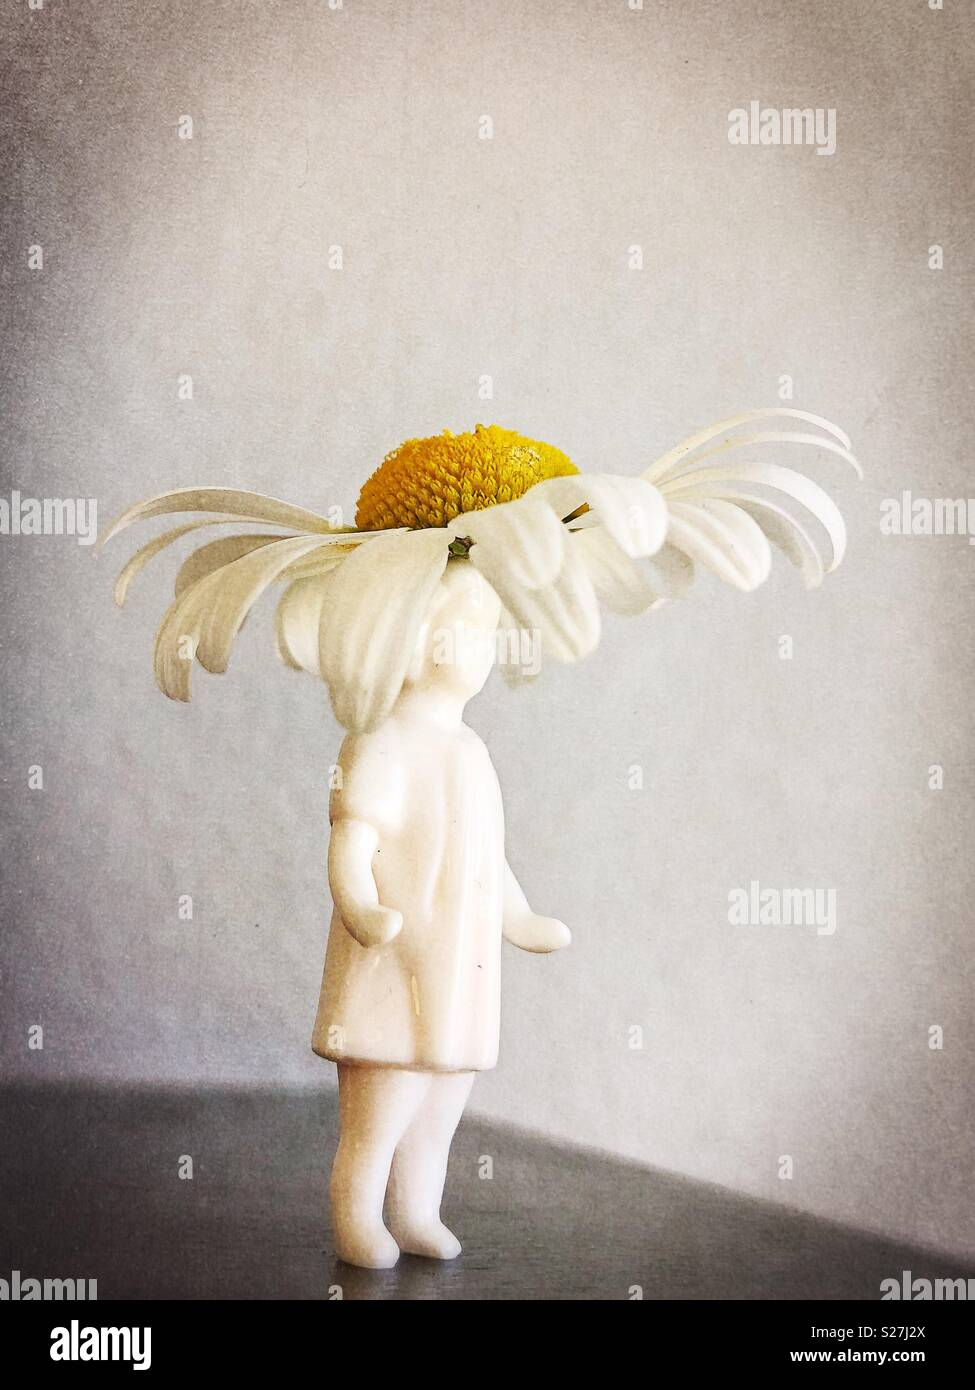 Figurine of a girl with daisy hat. - Stock Image